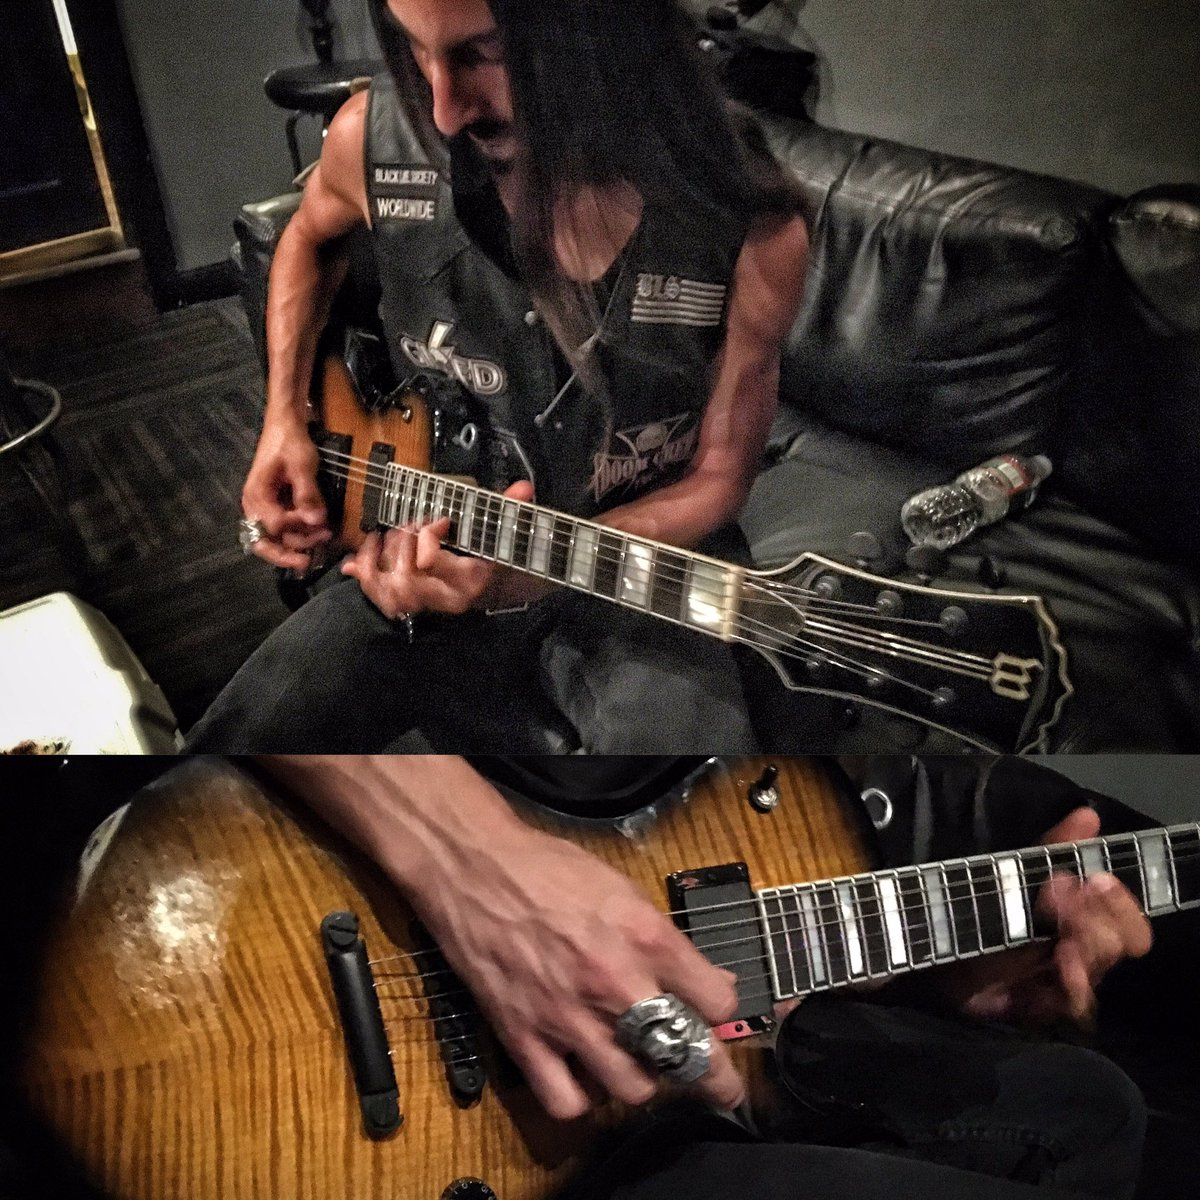 Jammin' on the @zakkwyldebls @wyldeaudio ODIN!